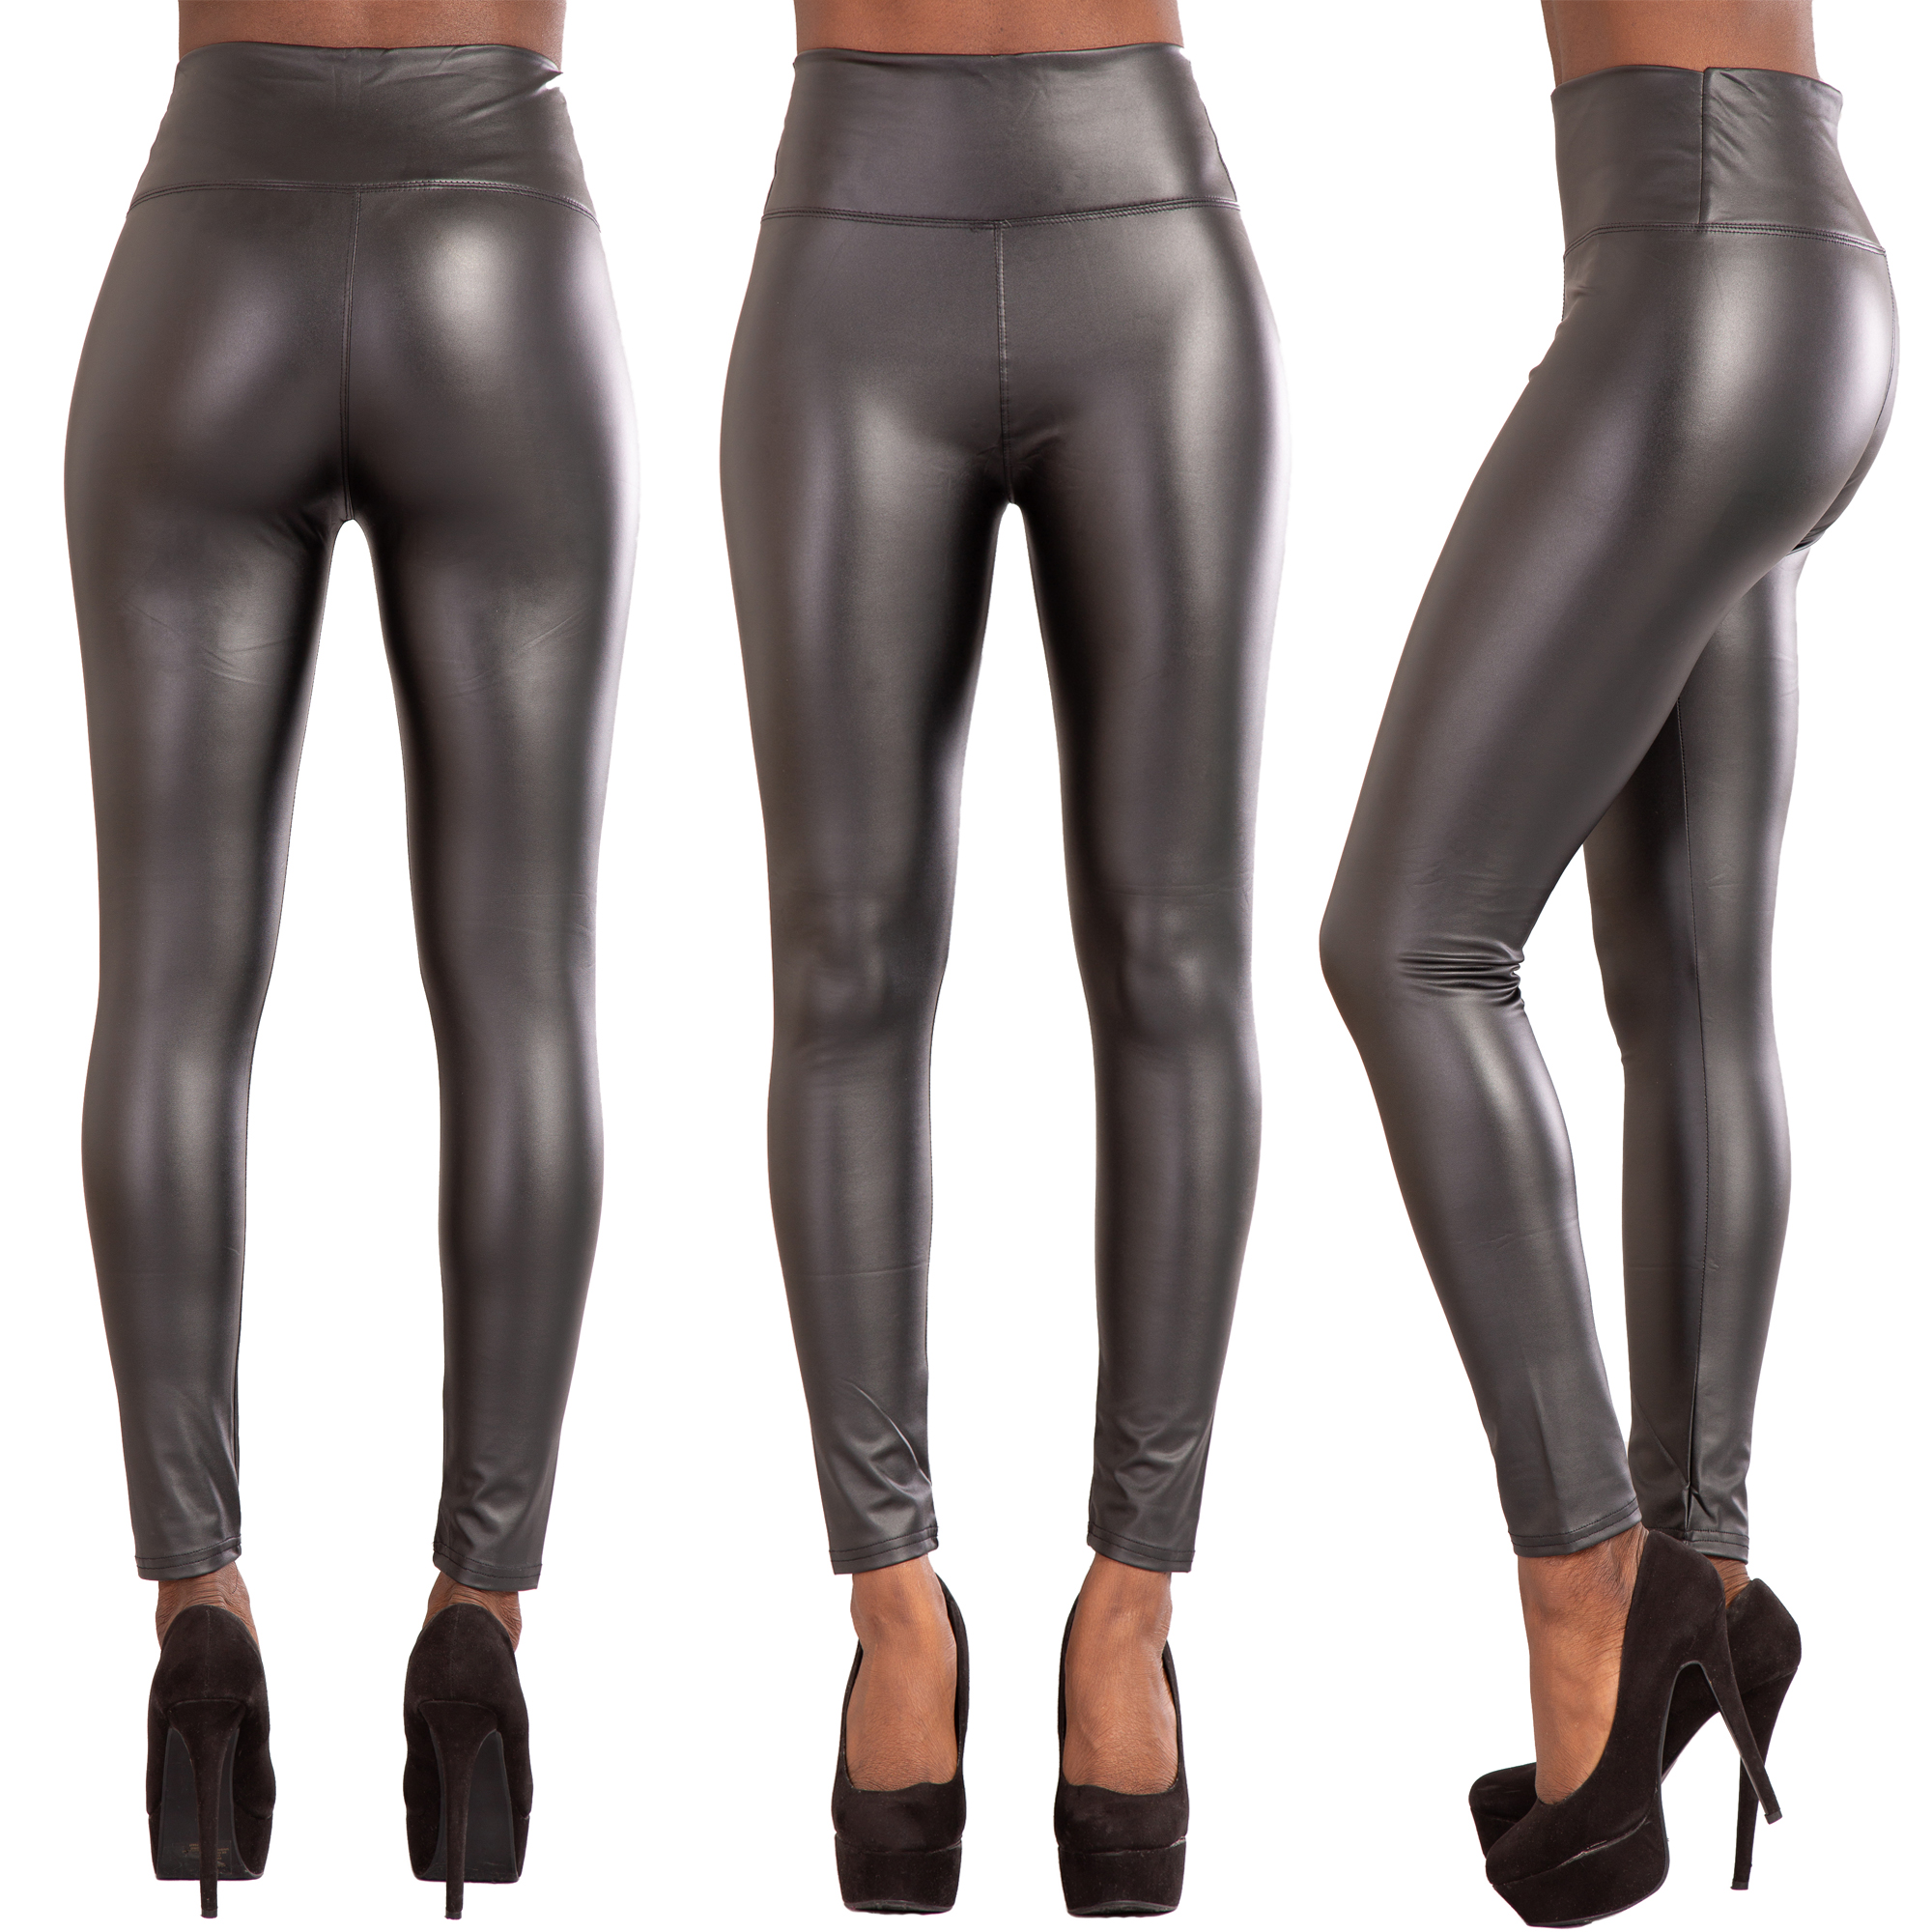 best loved buy hot-selling Details about Women High Waist Leather Look Leggings Trousers Ladies  Stretch Skinny Pants